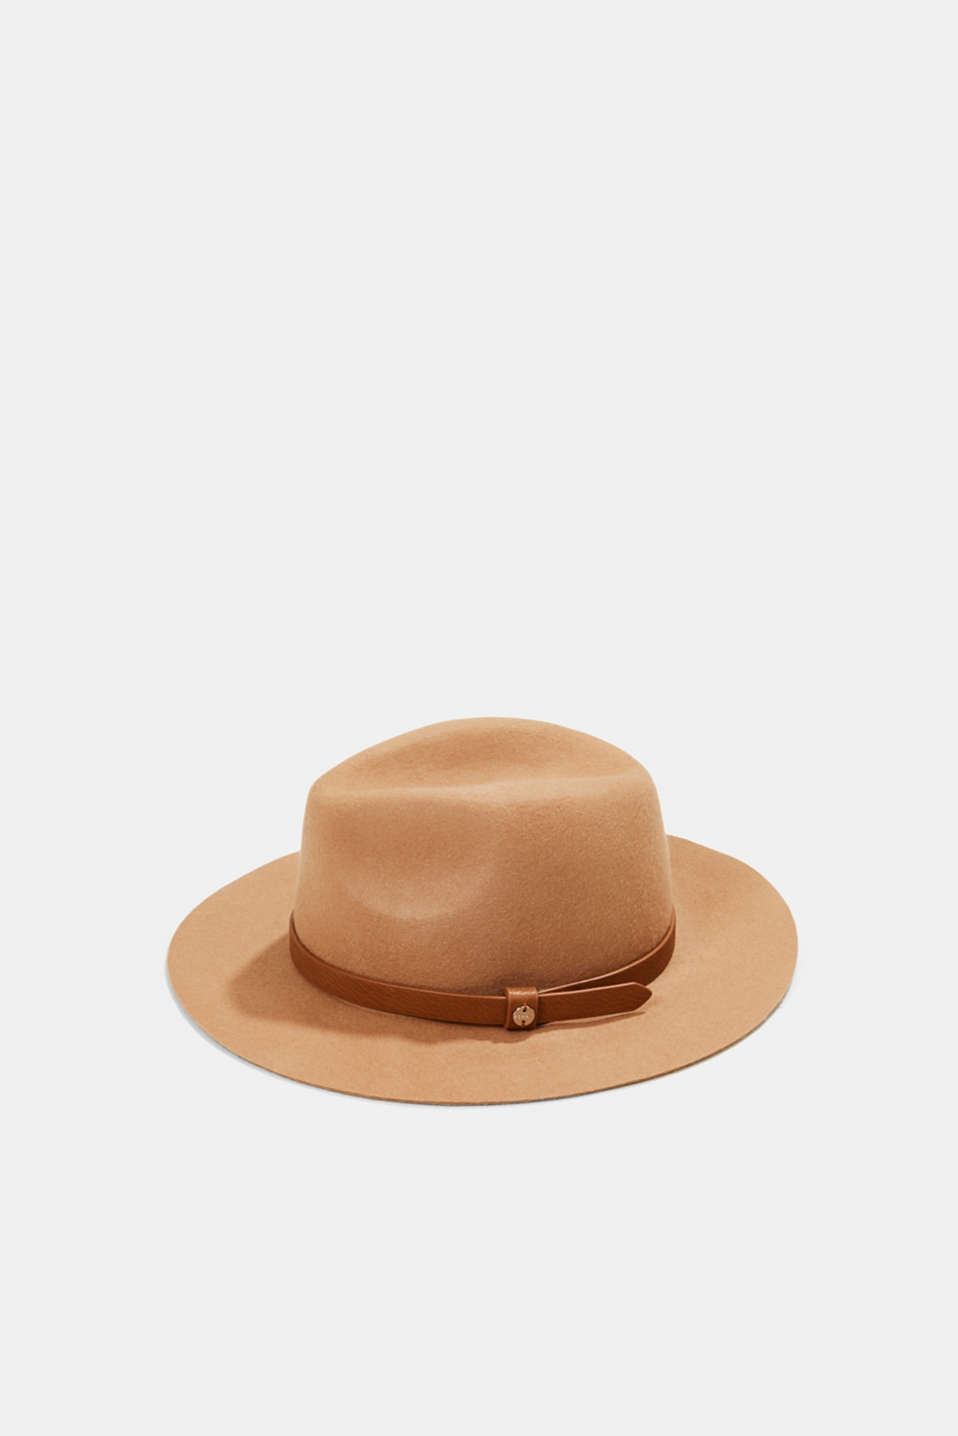 Esprit - Fedora hat made of 100% wool